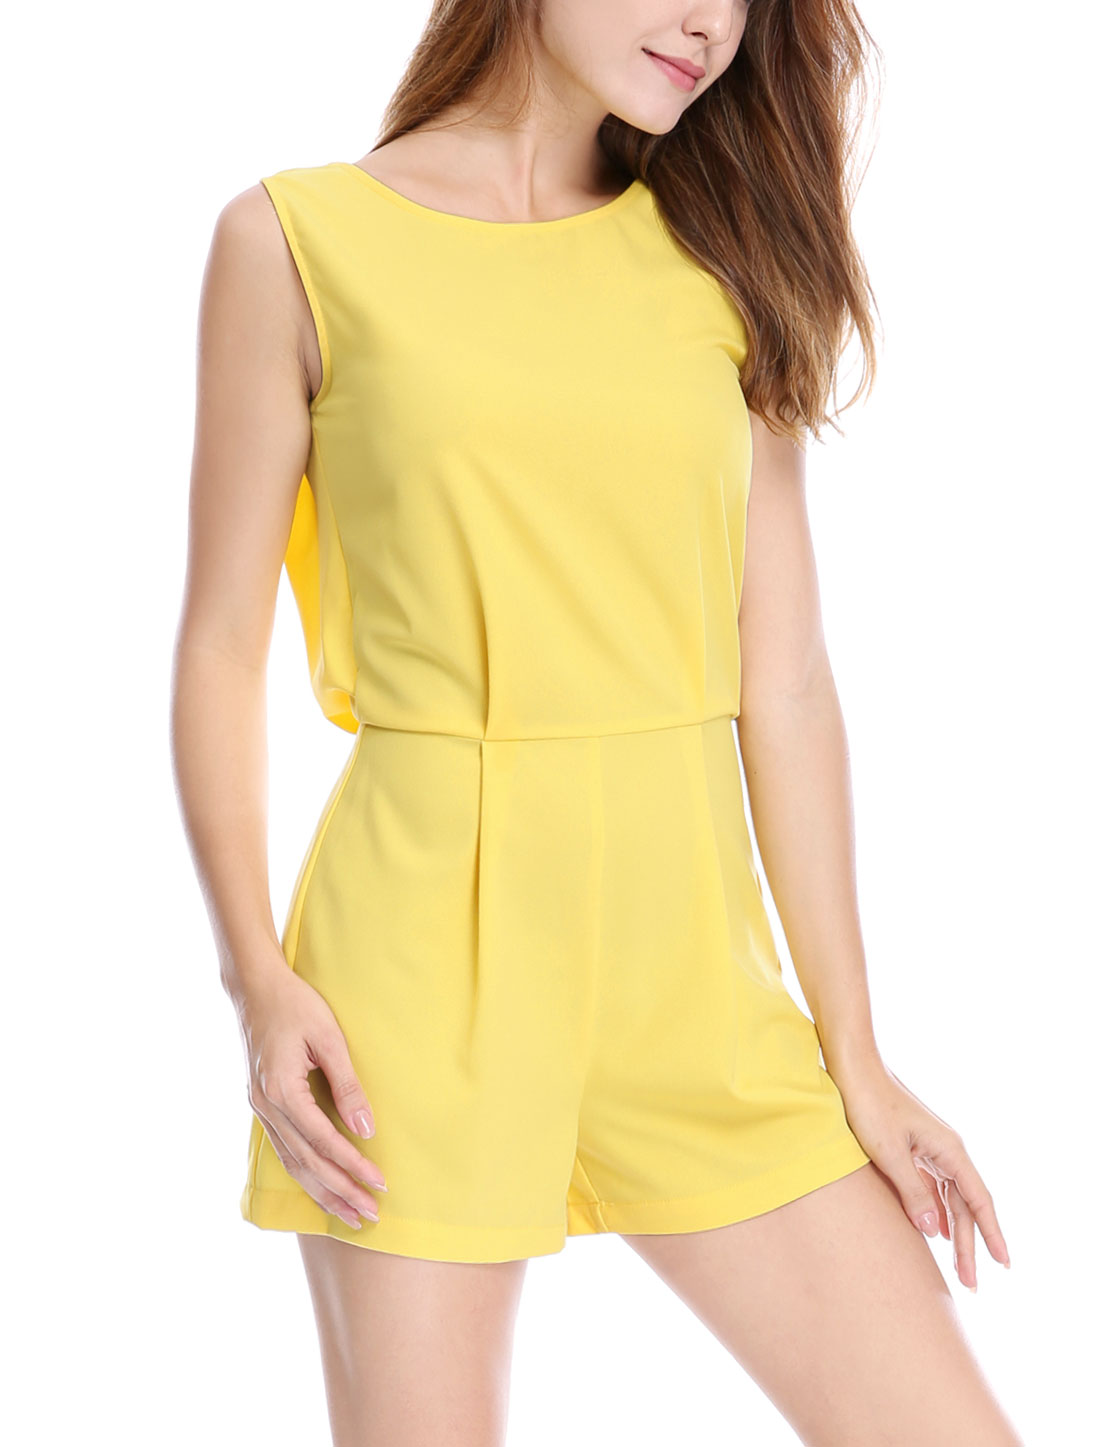 Women Sleeveless Crew Neck Lace Insert Back Romper Yellow L